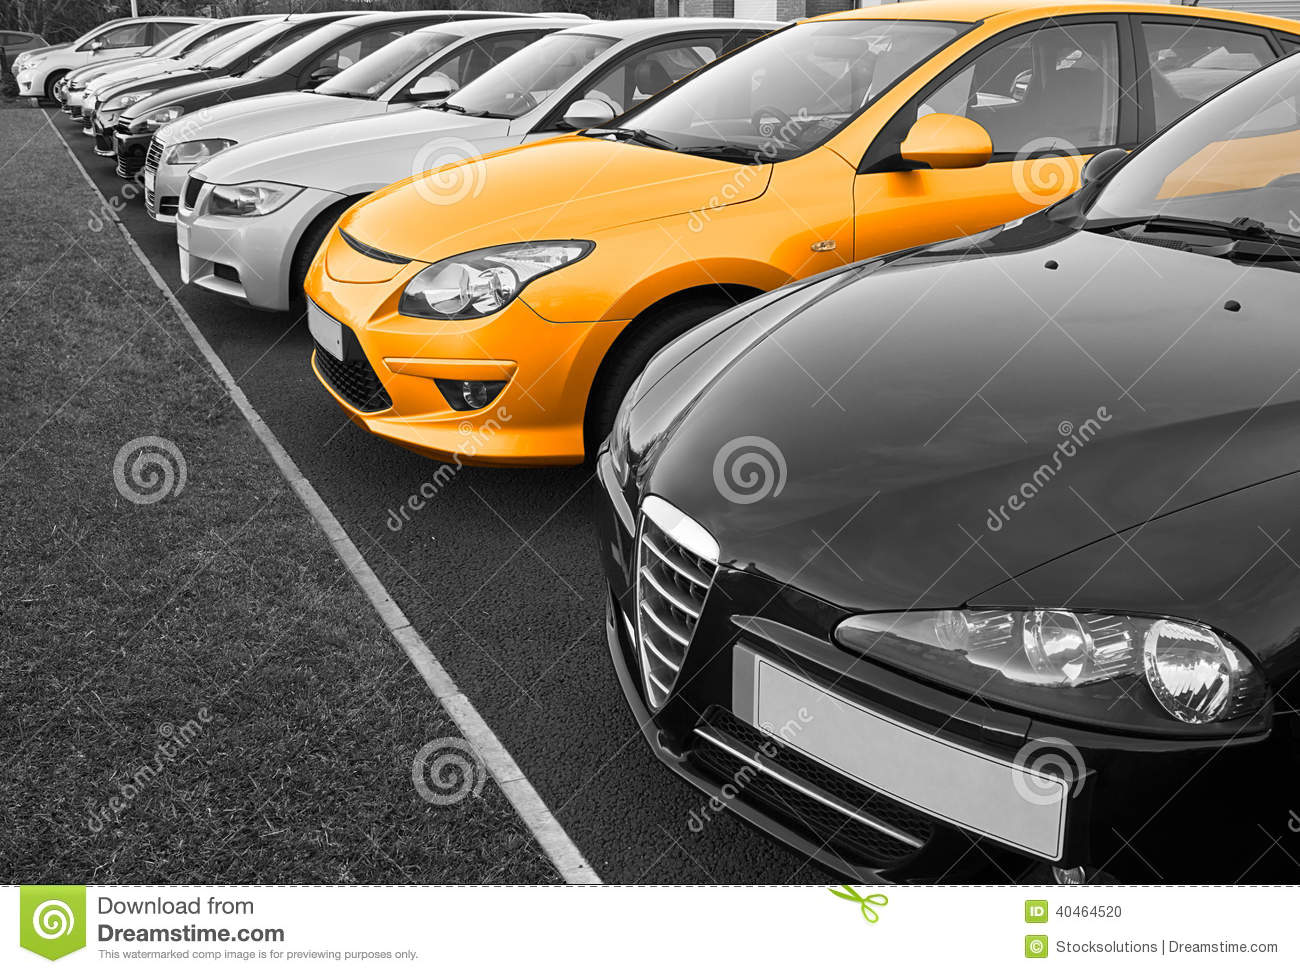 Used Cars For Sale Stock Image Image Of Cars License: Perfect Car Selection Stock Photo